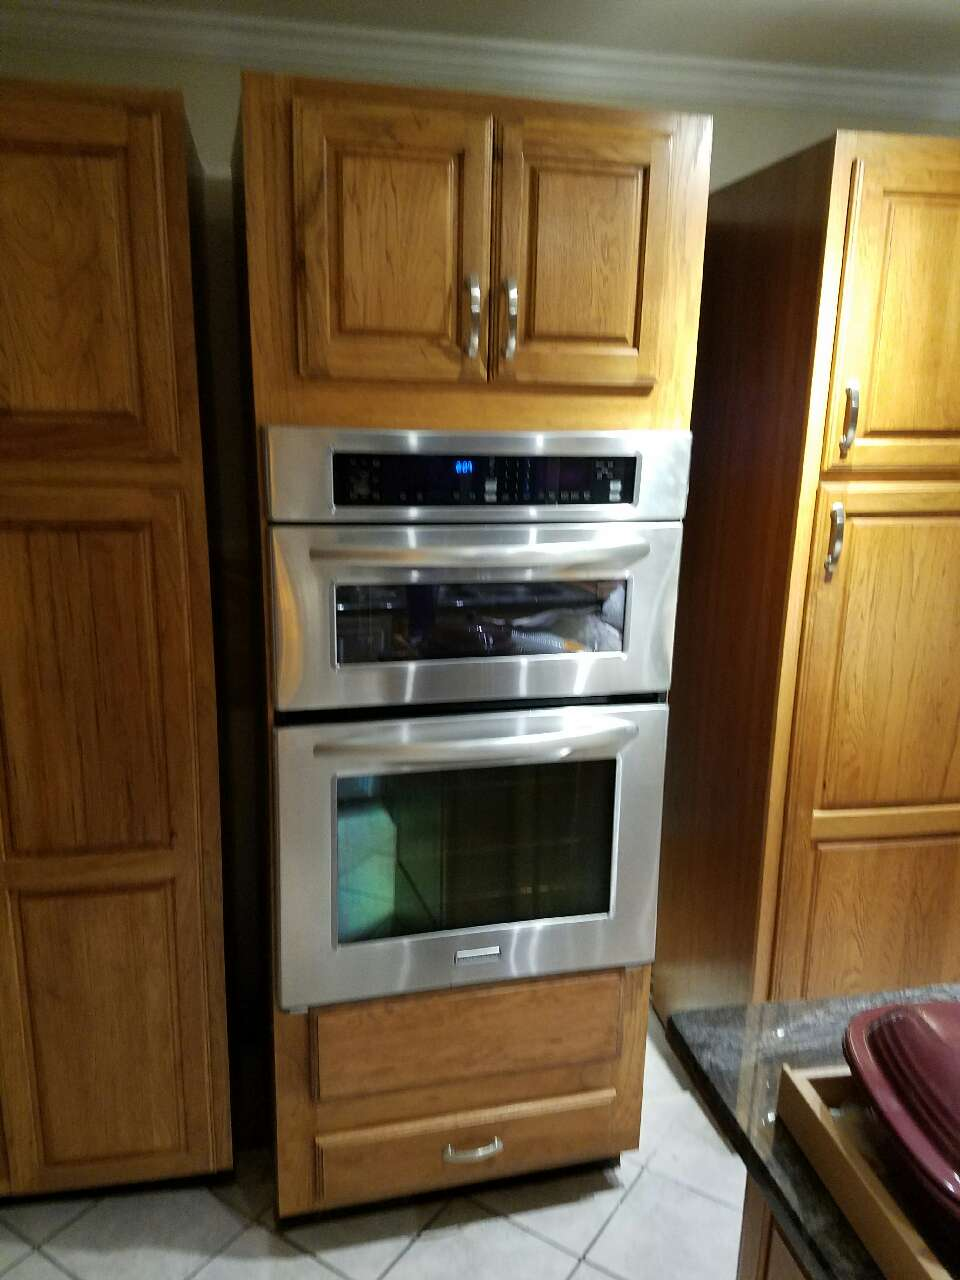 Letgo wall oven microwave combo cabinet in hixson tn for Wall oven microwave combo cabinet